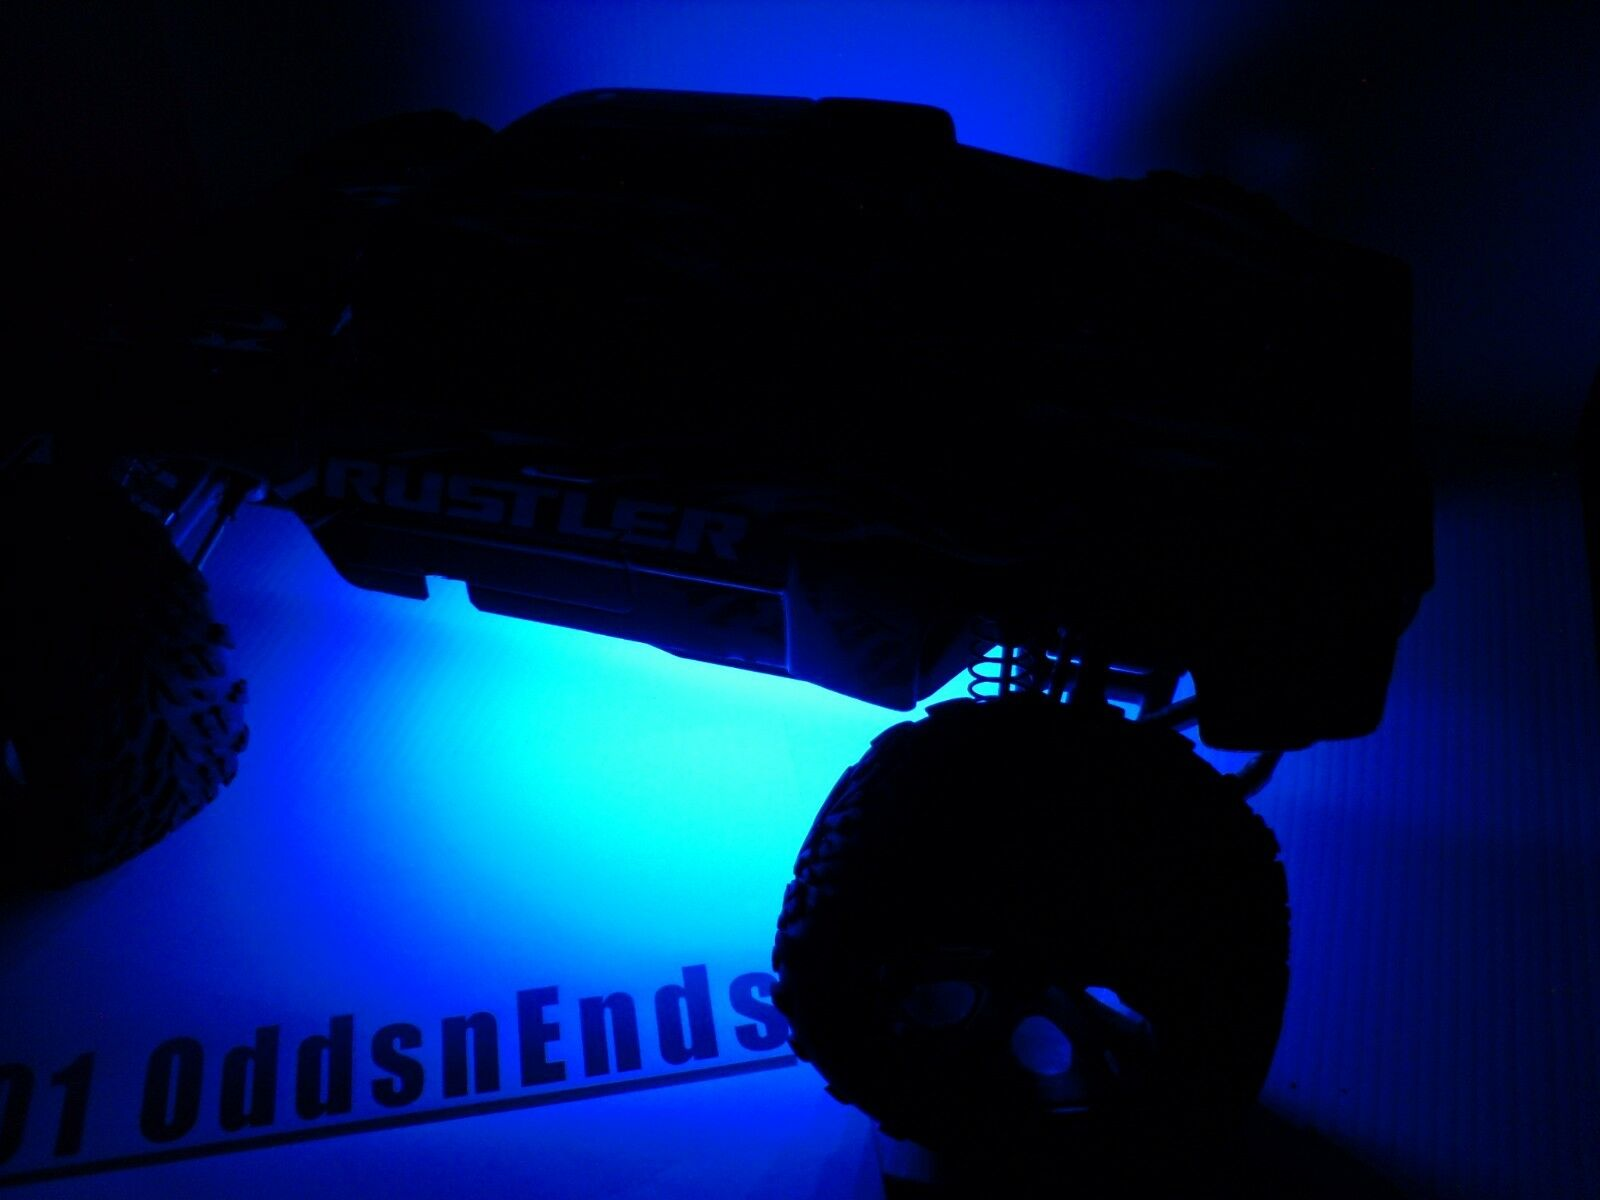 Blue traxxas rustler bandit universal 110 rc led strip lights plug picture 1 of 4 aloadofball Image collections